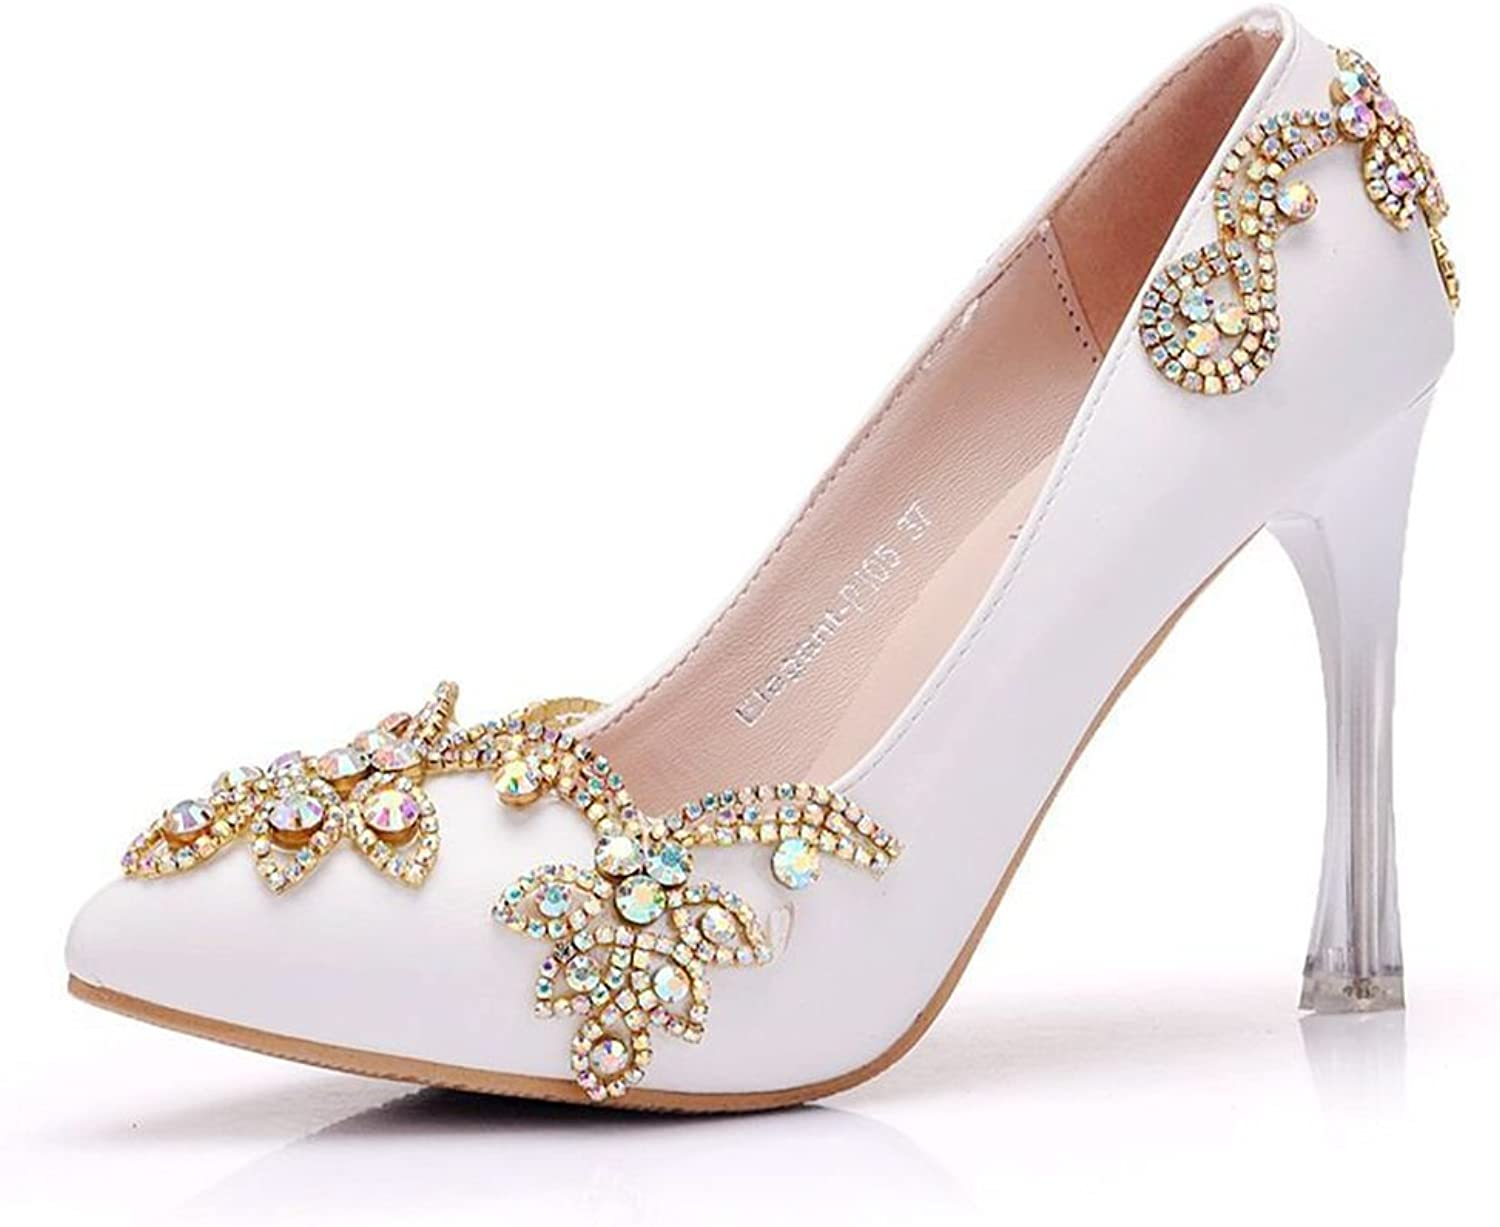 TUYPSHOES Womens Rhinestone Platform Stiletto High Heels Wedding Prom Evening Dress Pumps